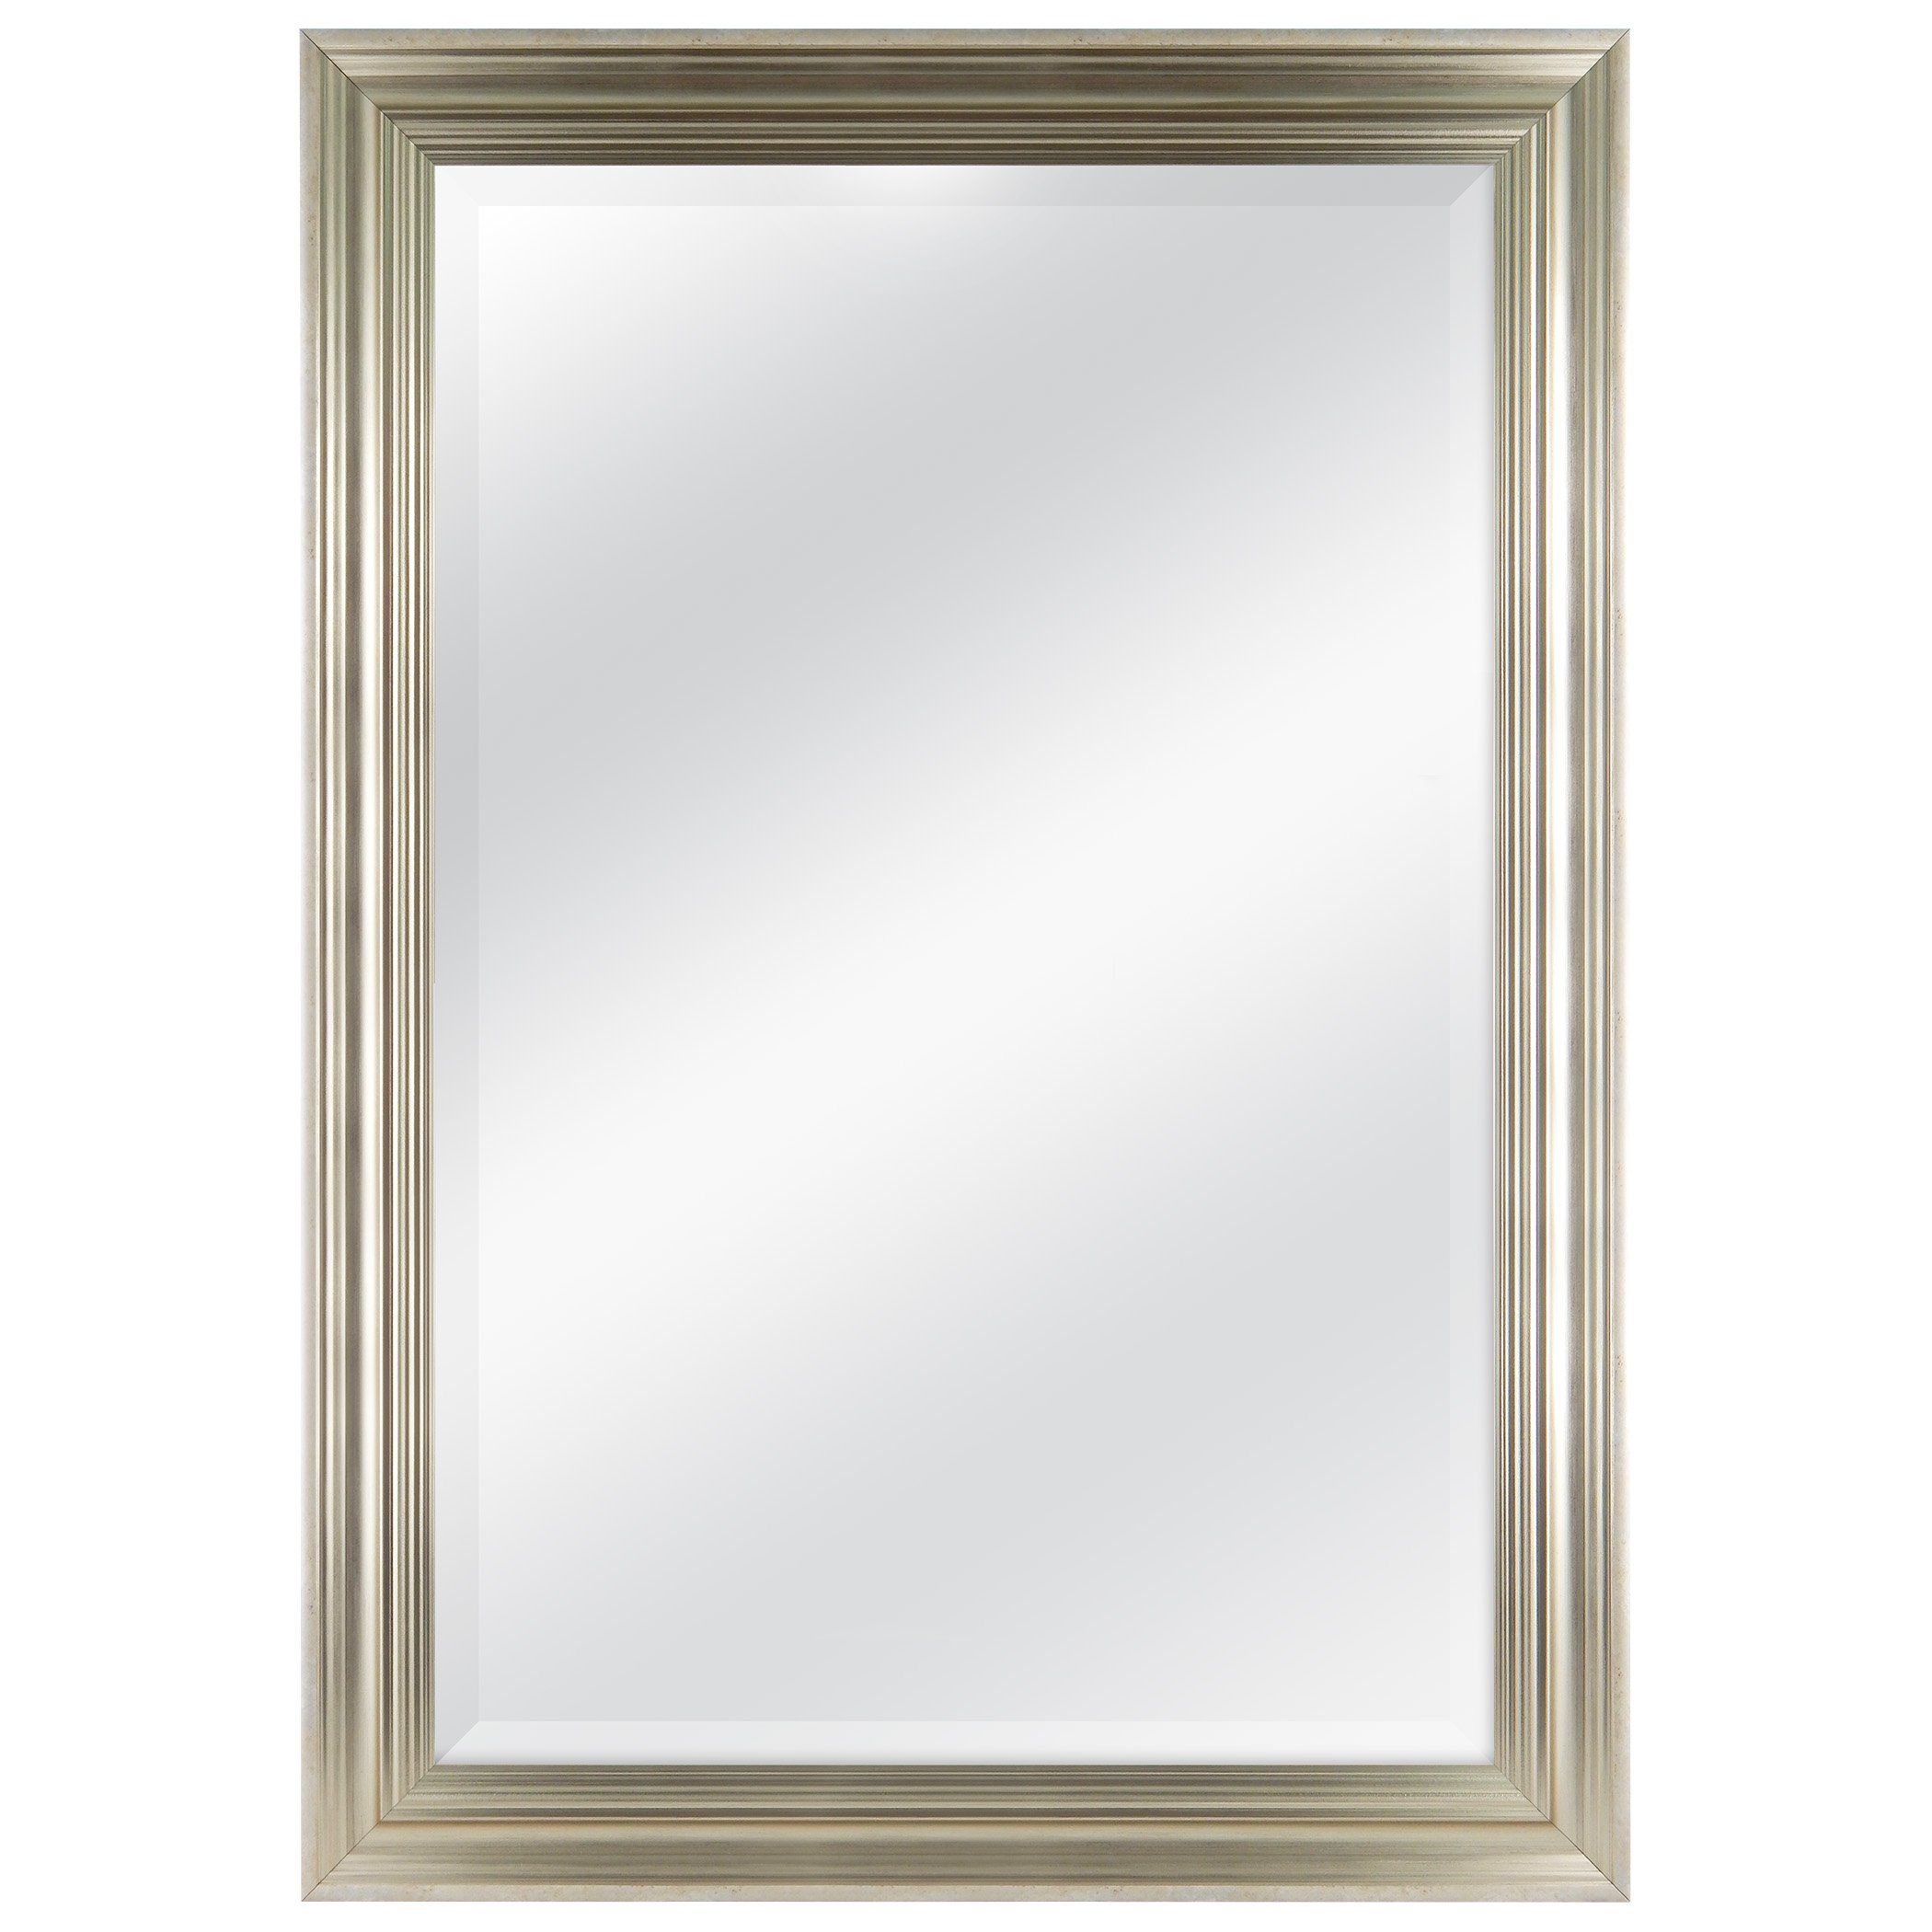 MCS 29.5x41.5 Inch Frame with 24x36 Inch Scoop Mirror, Champagne ...